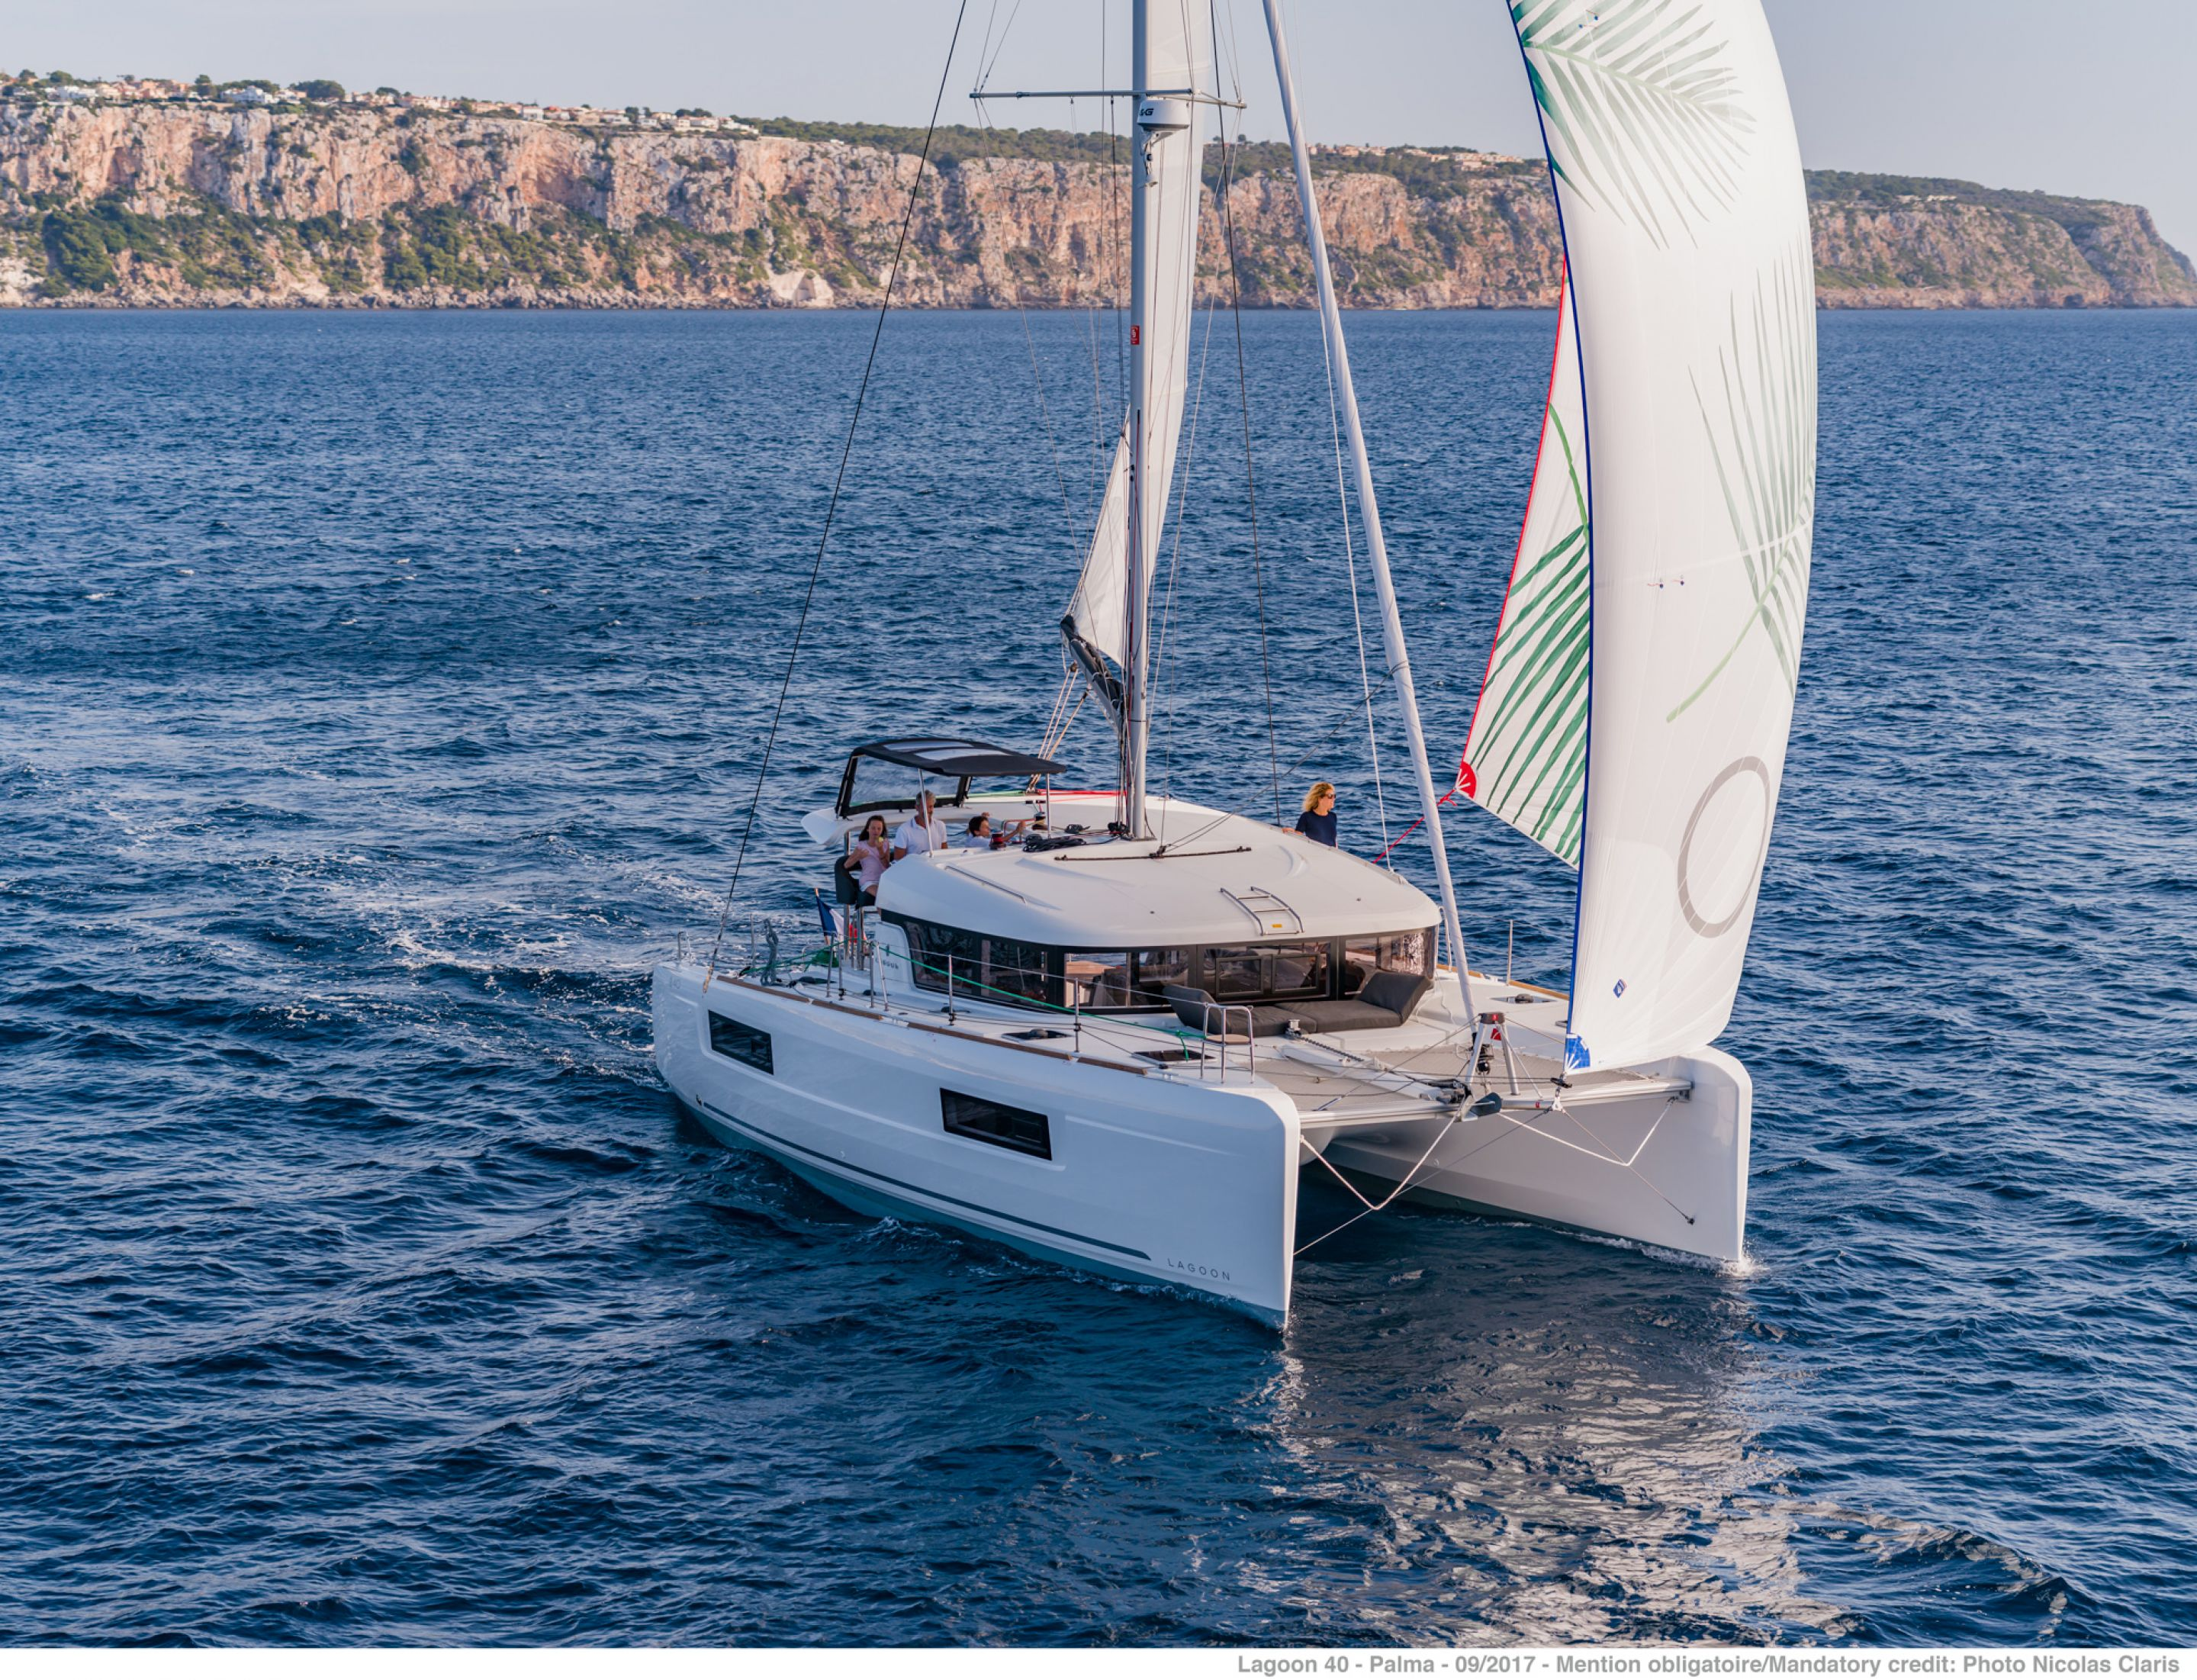 Lagoon 40 Prestige - Catamaran for Charter in Greece